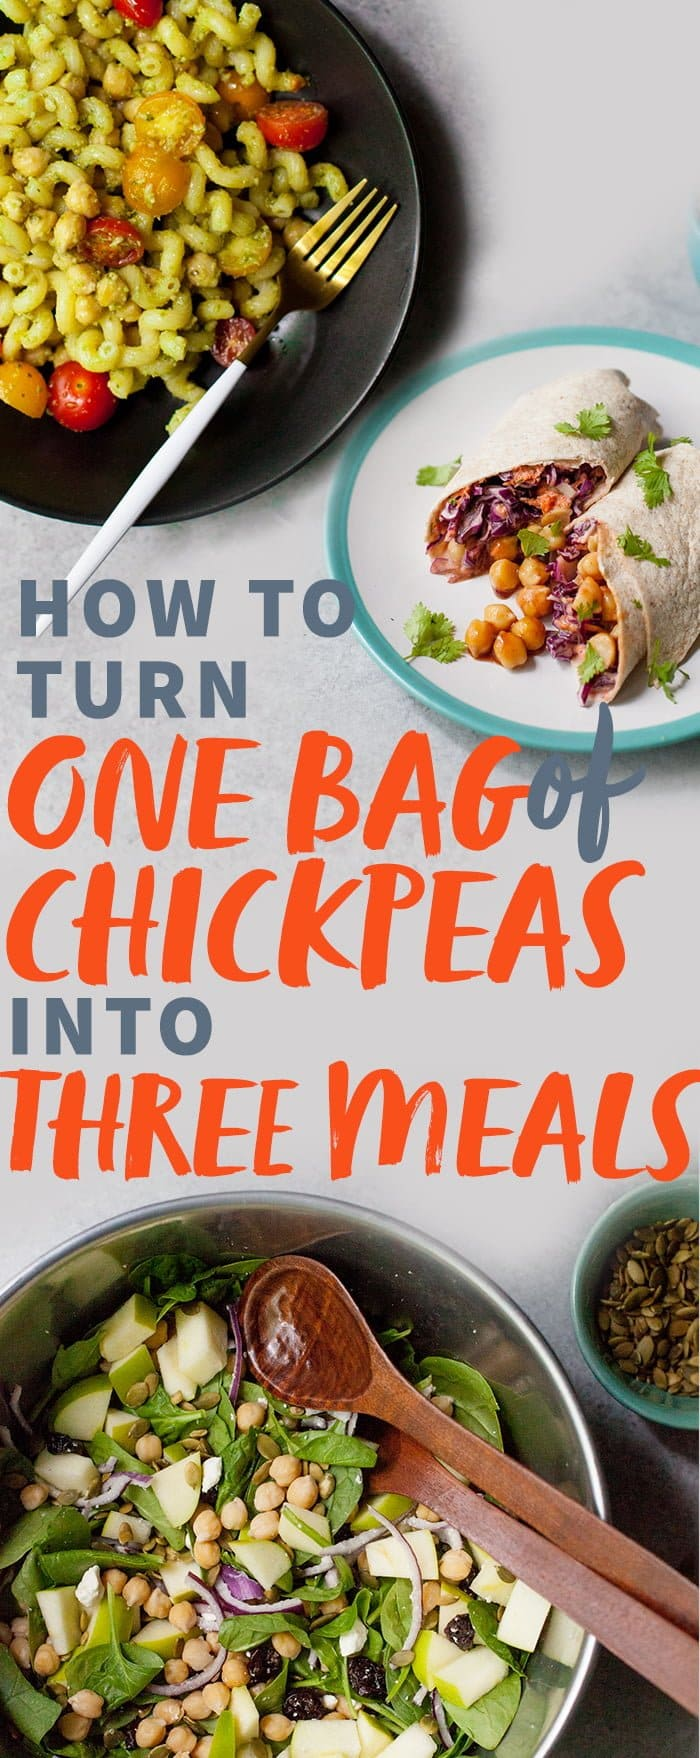 One Bag of Chickpeas, Three Meals